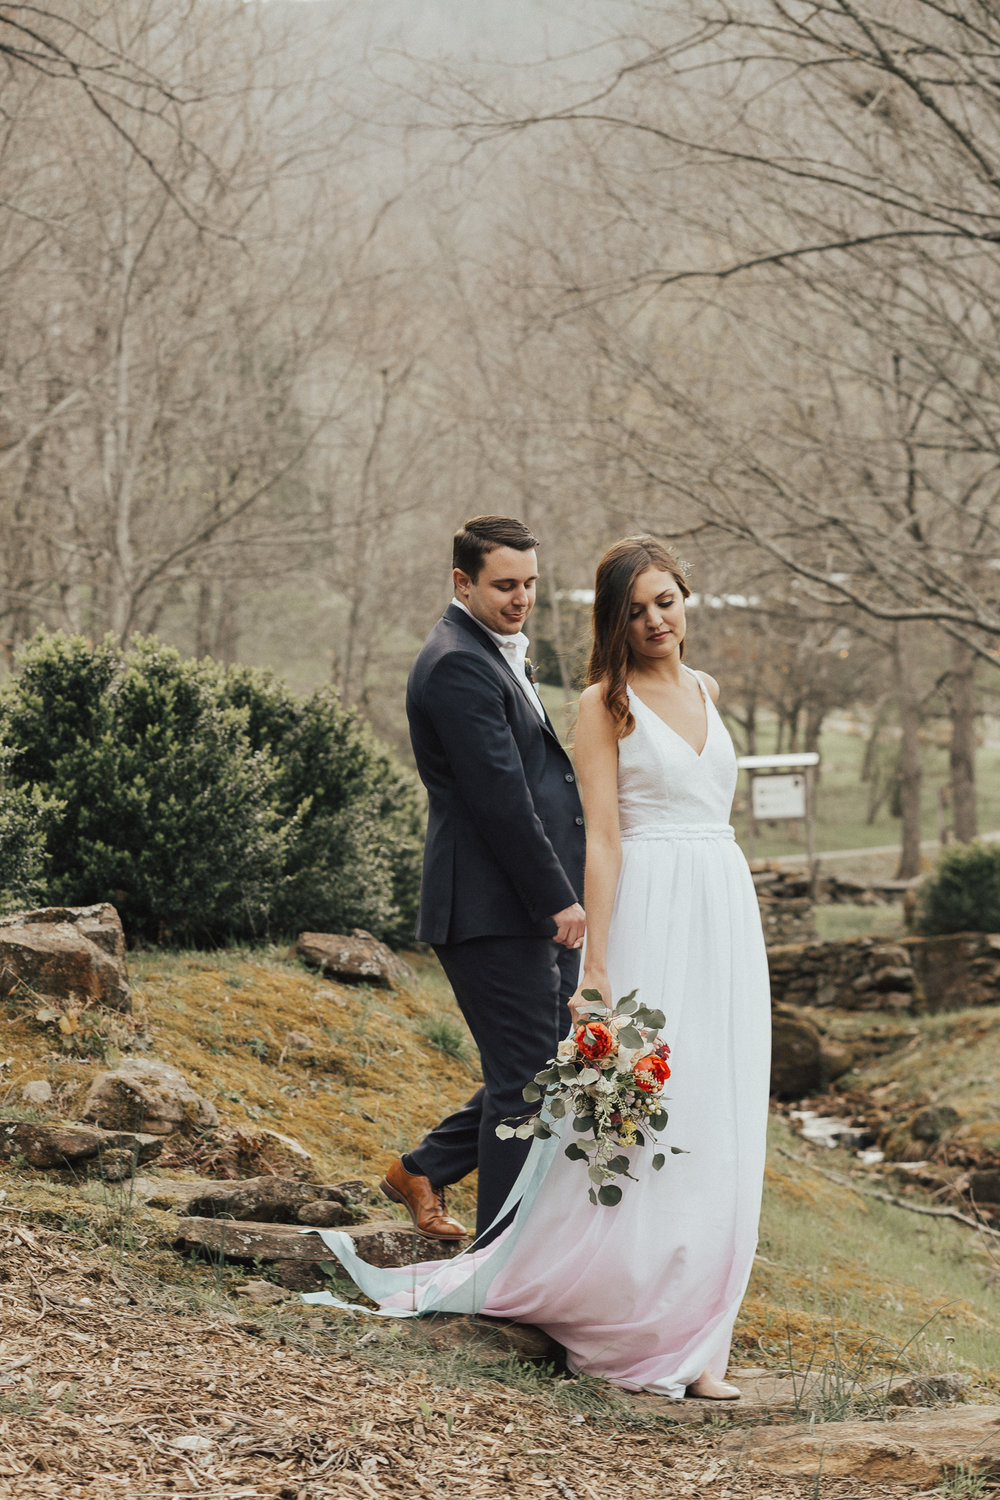 Ashley Steffens Photography Styled Shoot Summer Festival 12